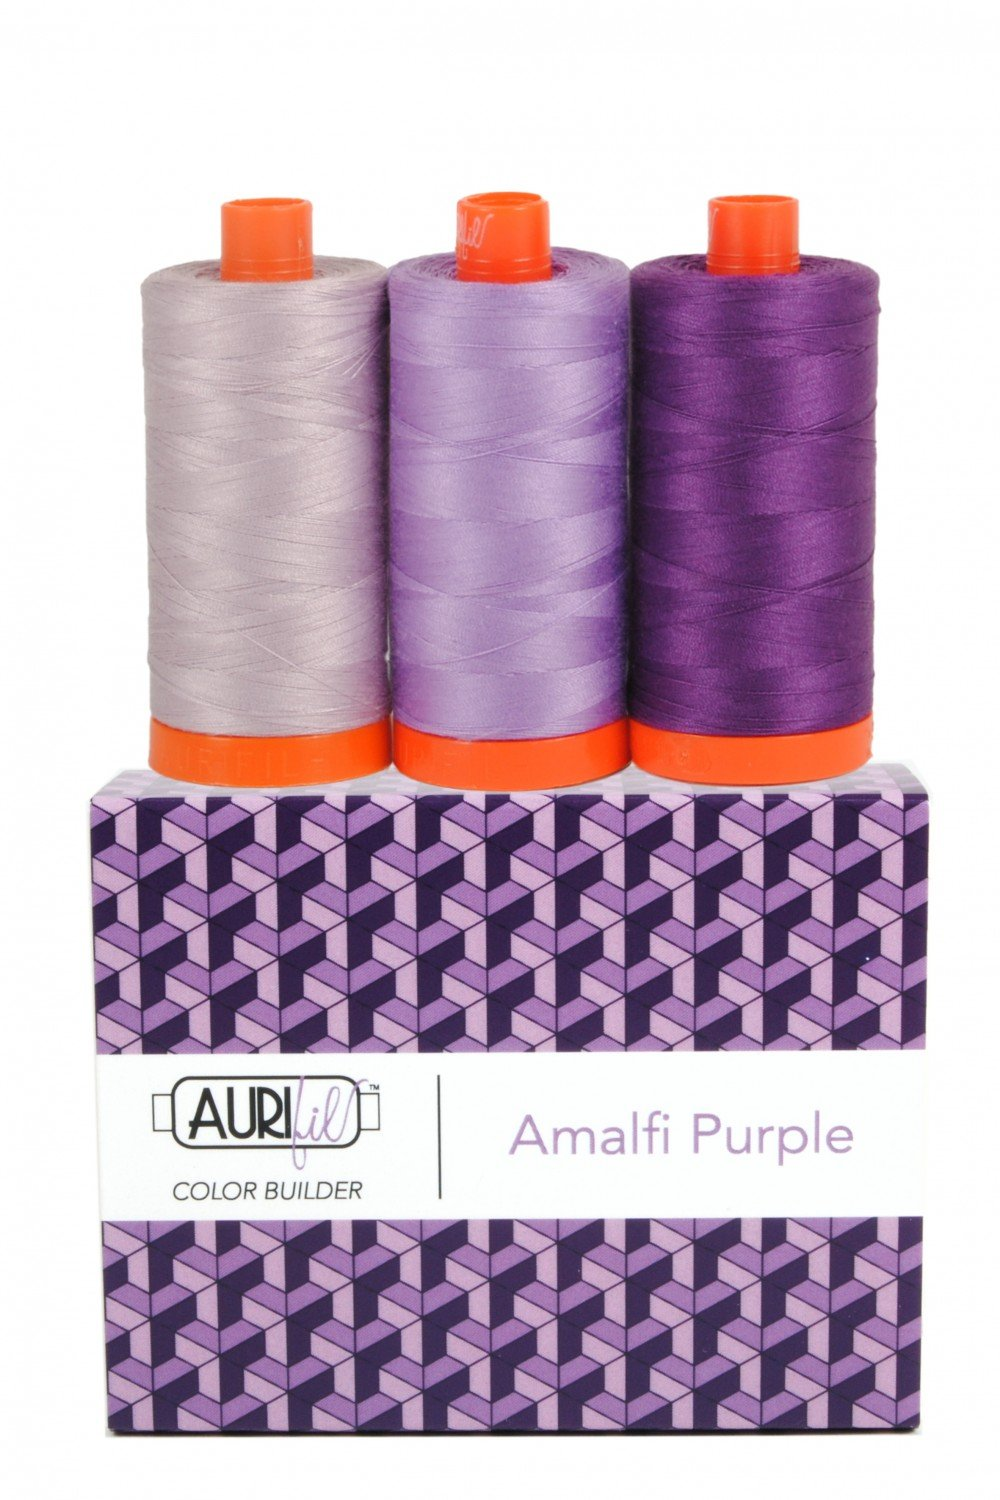 Aurifil Color Builder 3pc Set - Amalfi Purple